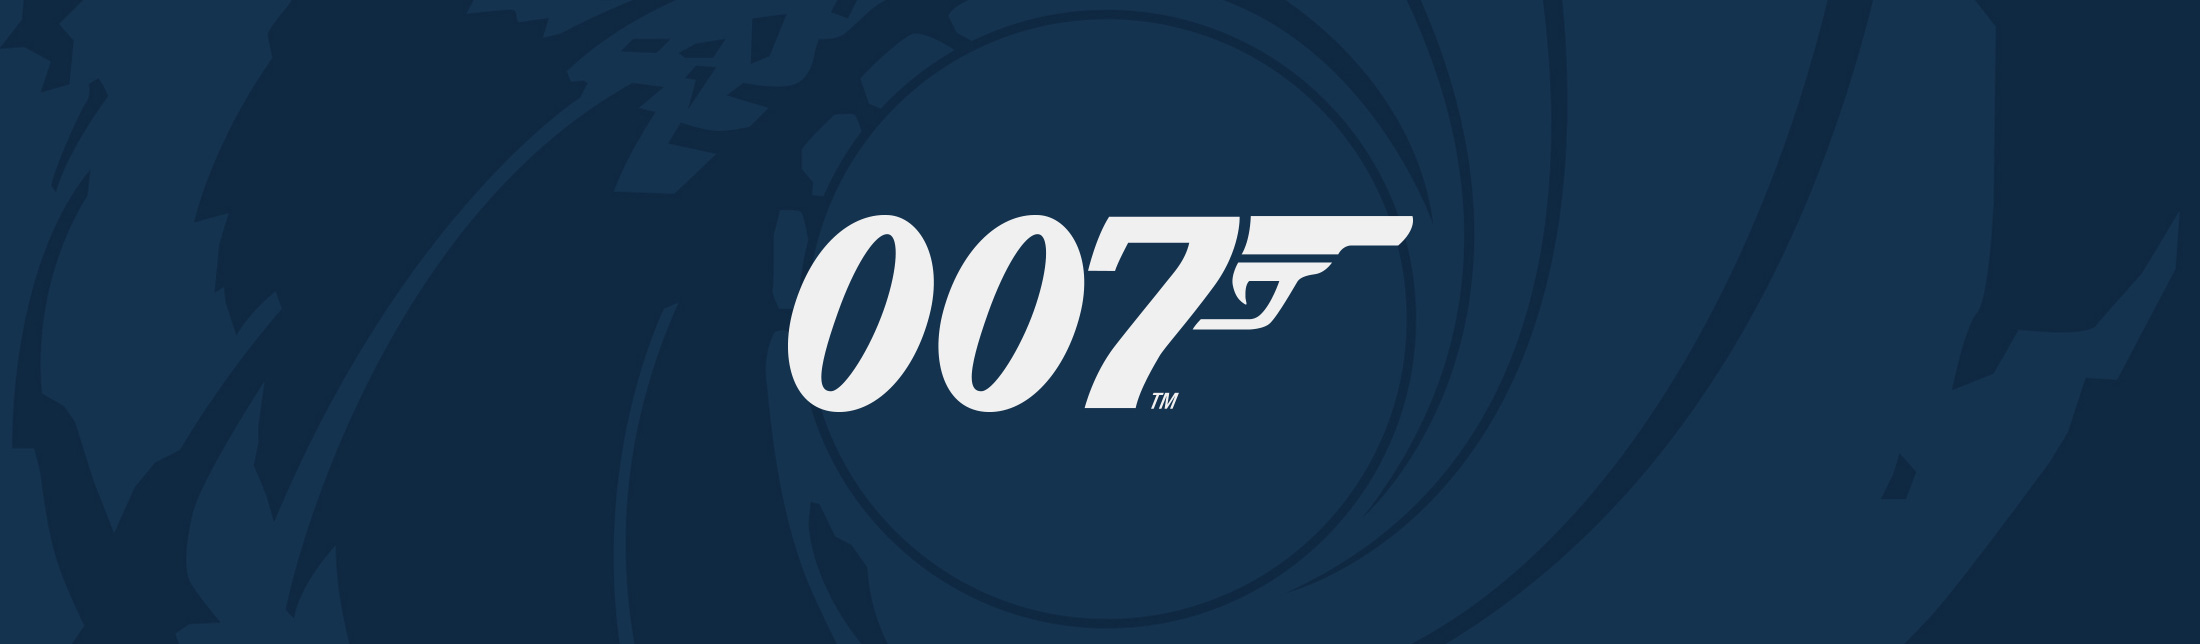 james-bond-collectibles-available-at-fabgearusa.com.jpg